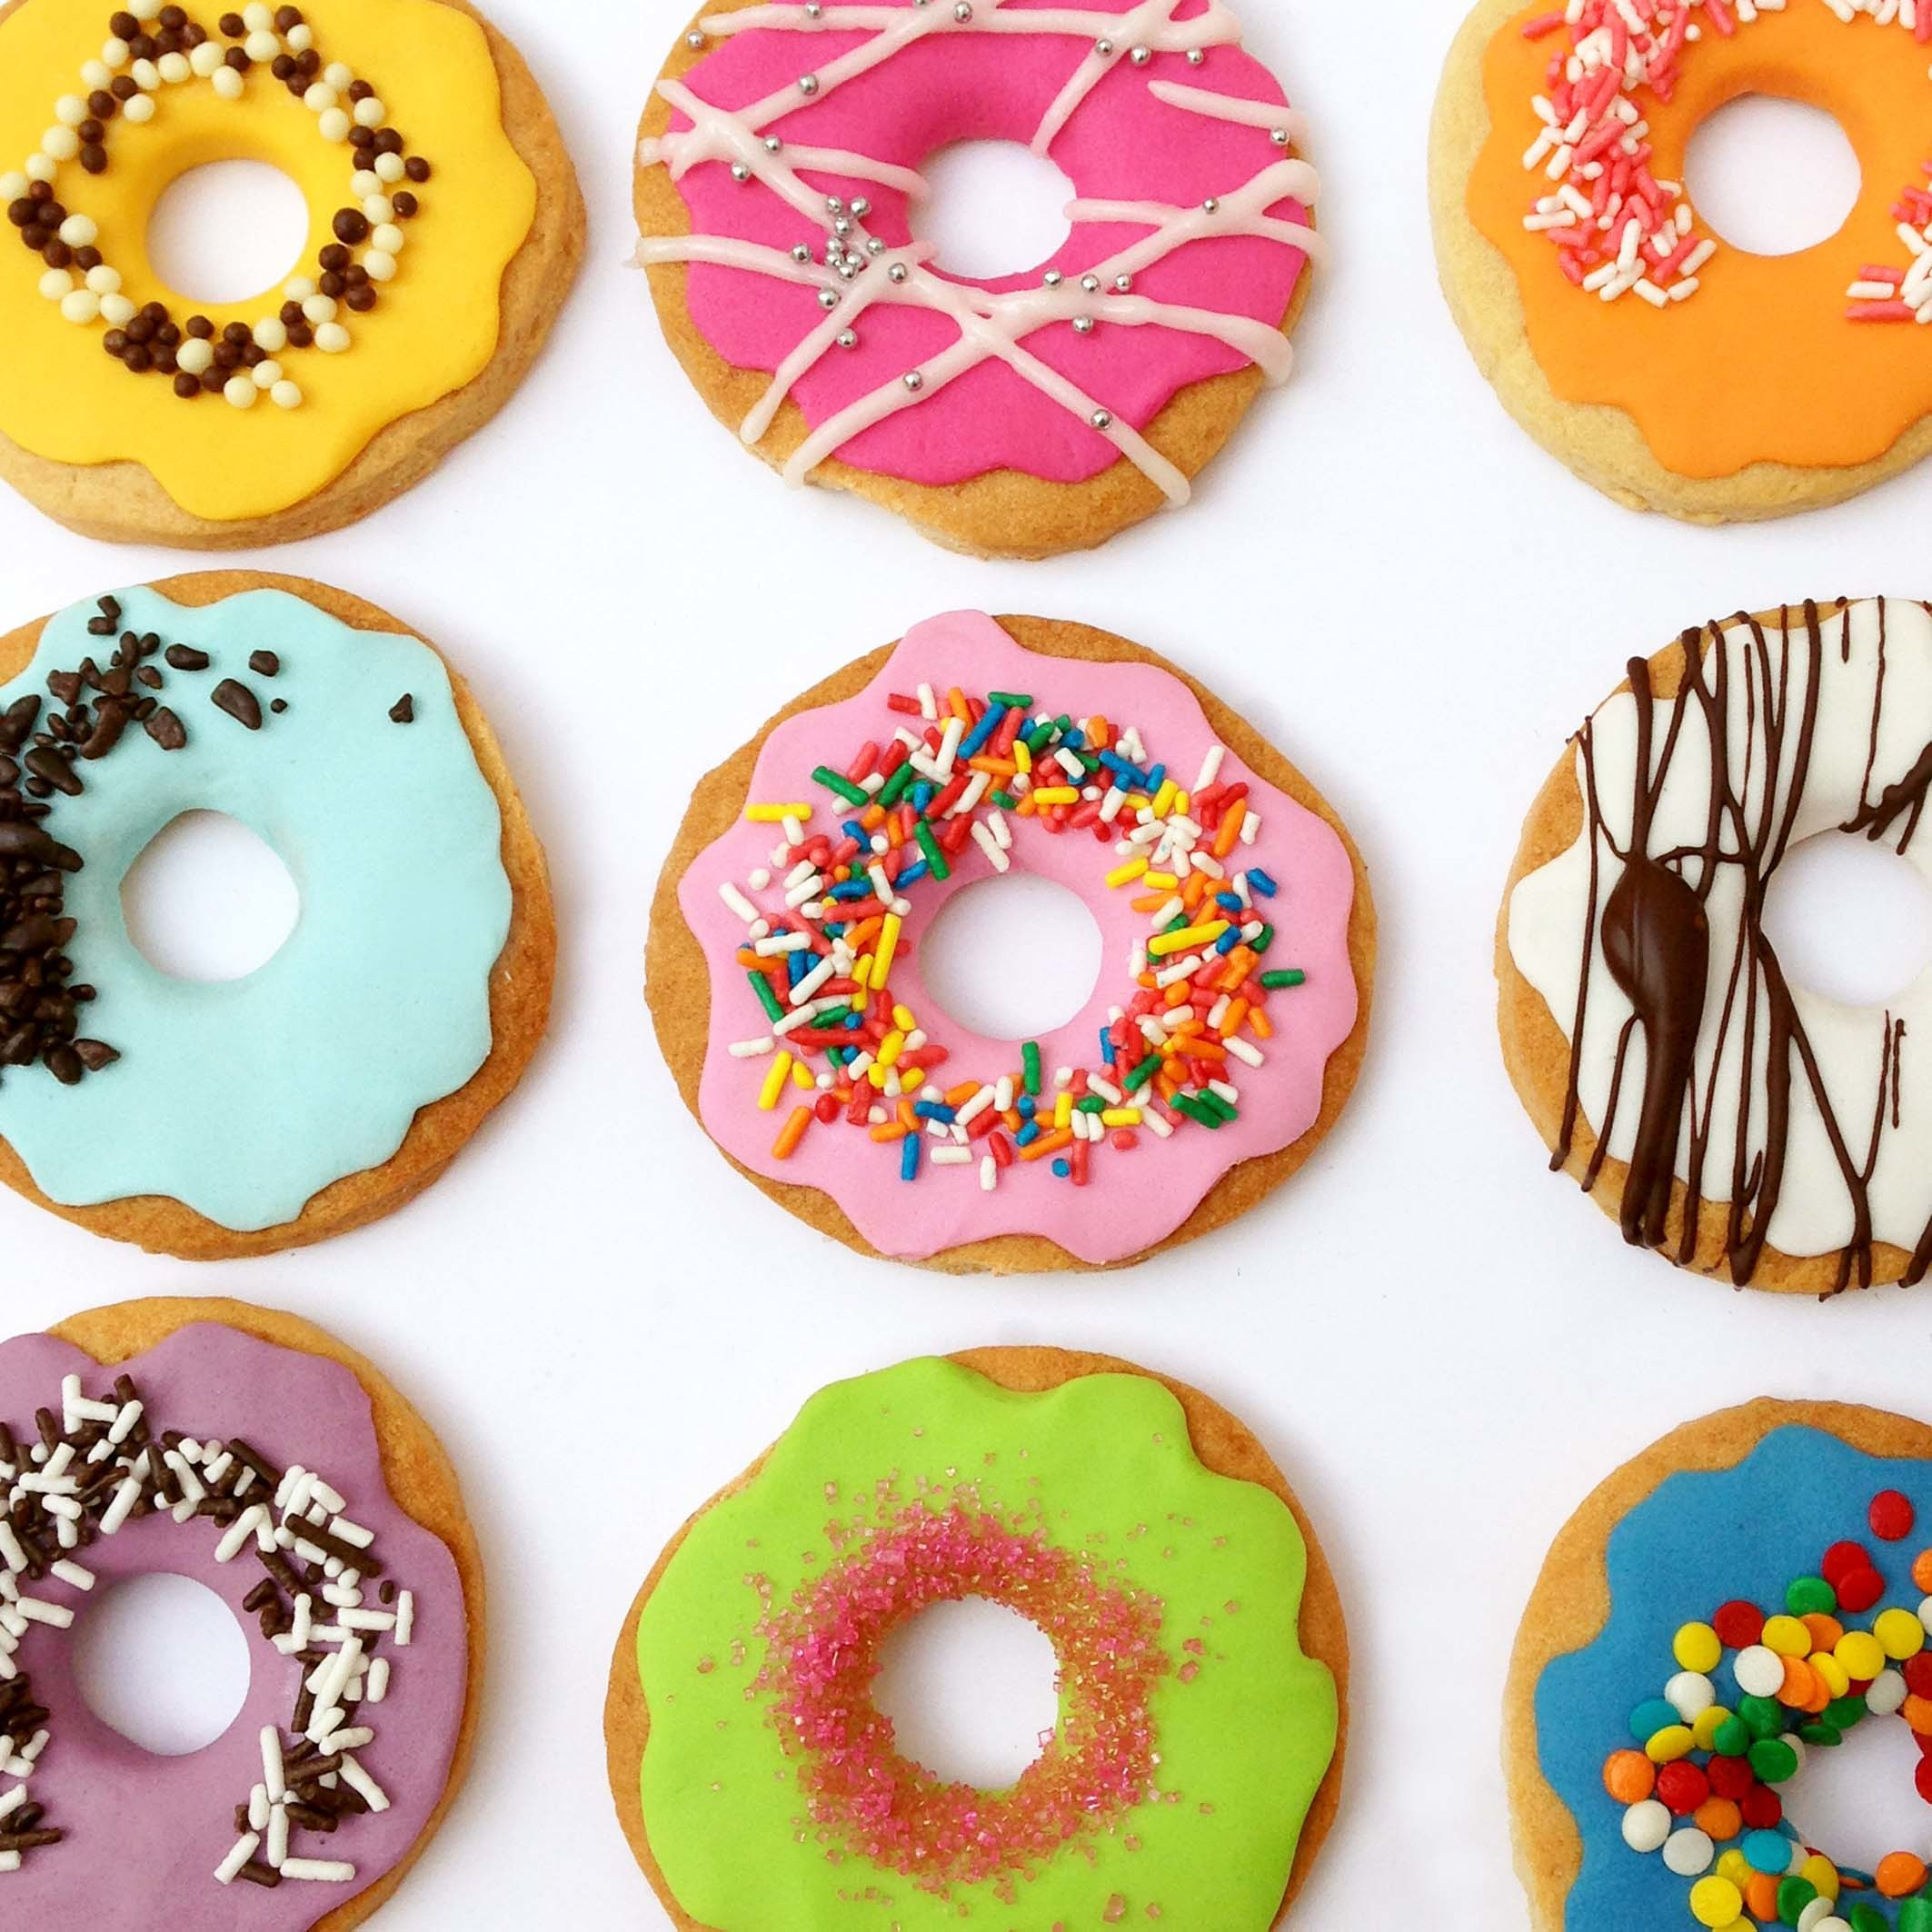 Colorful Fondant Donut Cookies